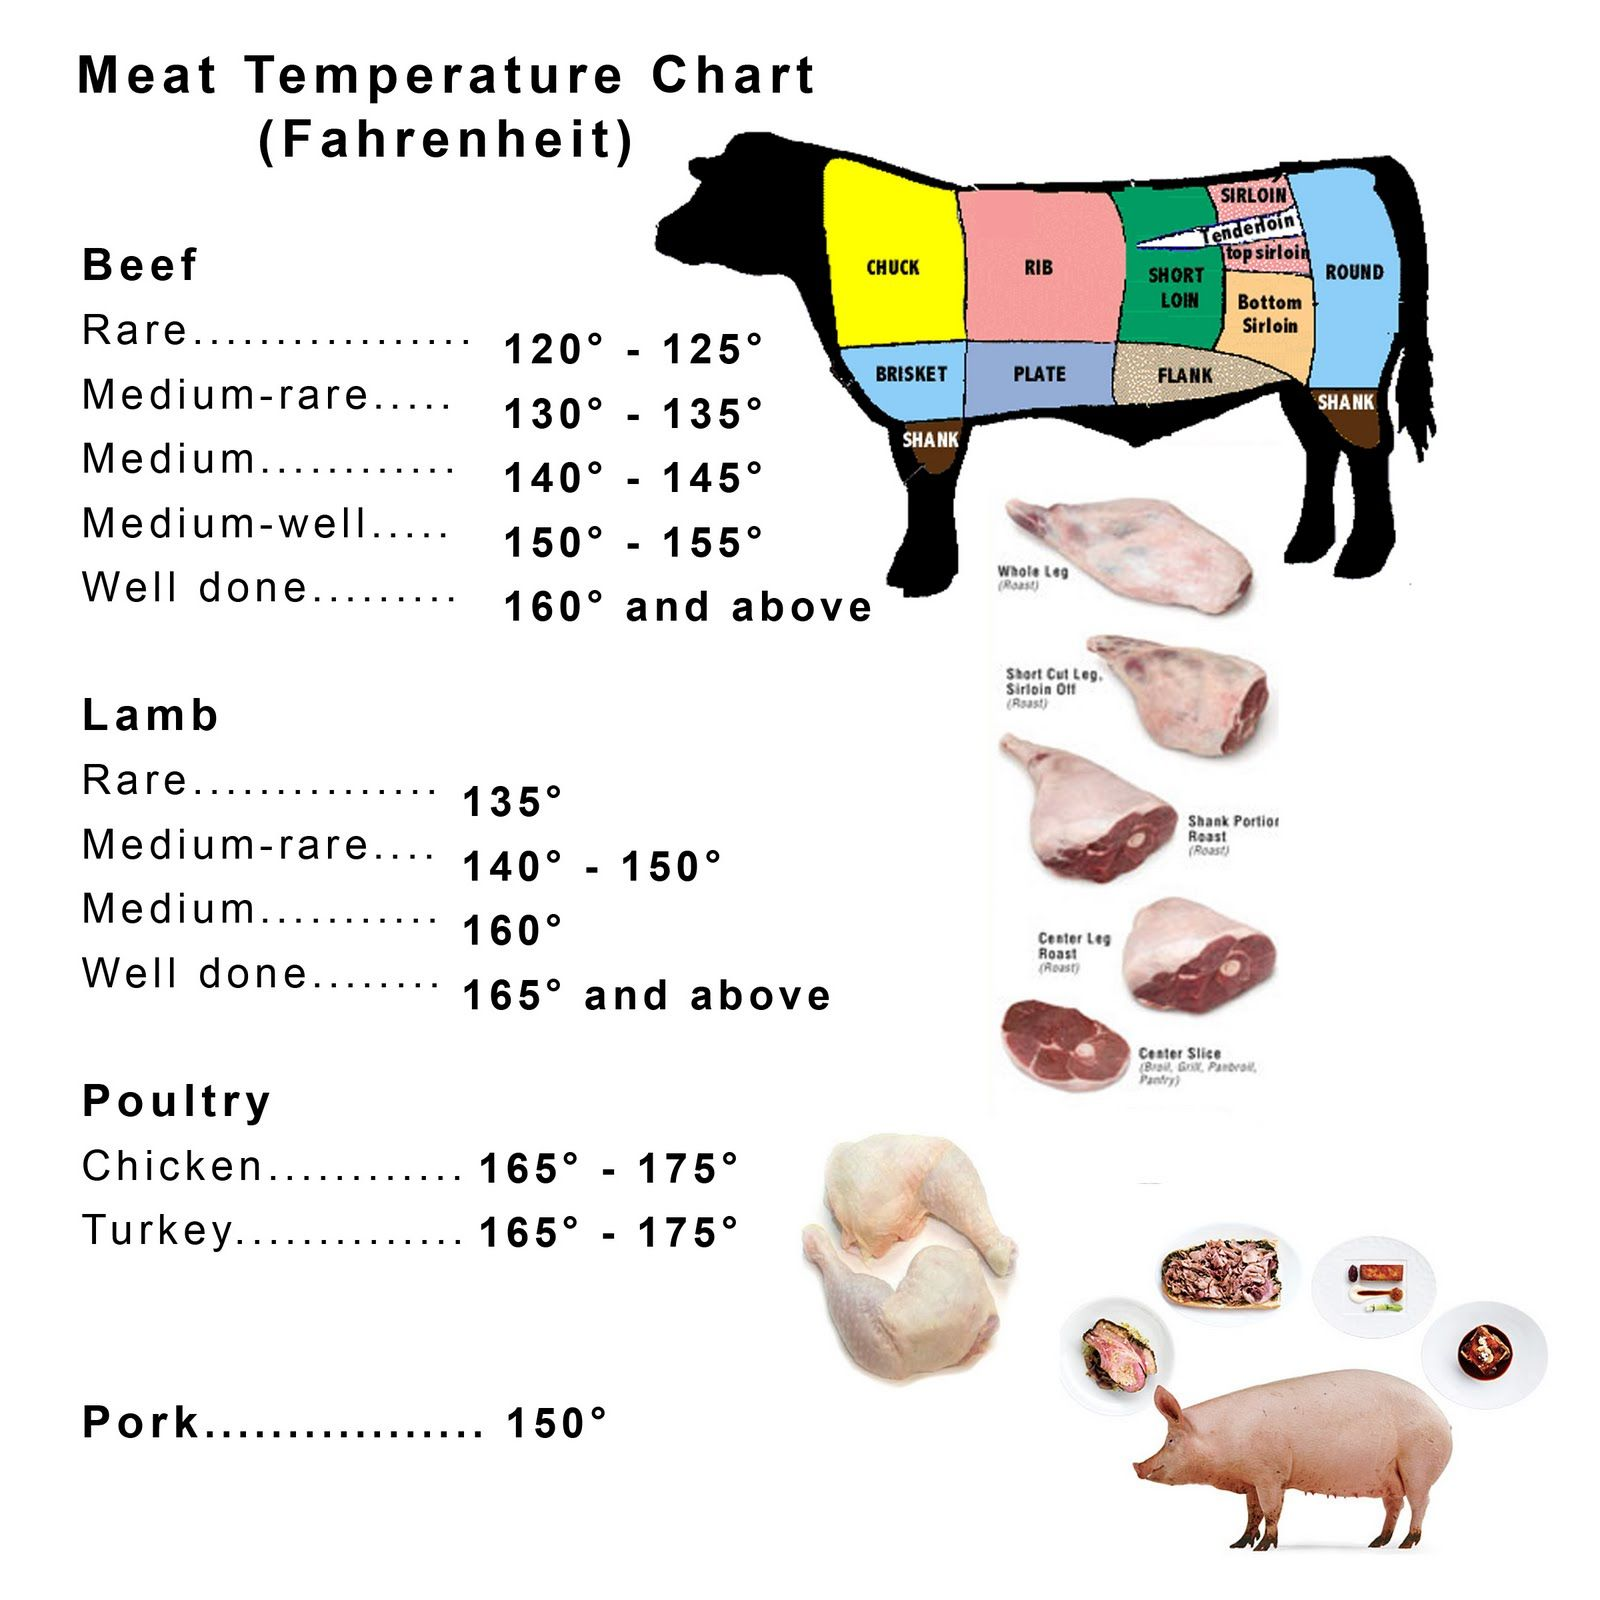 Meat and poultry temperature chart lamb left over chicken meat